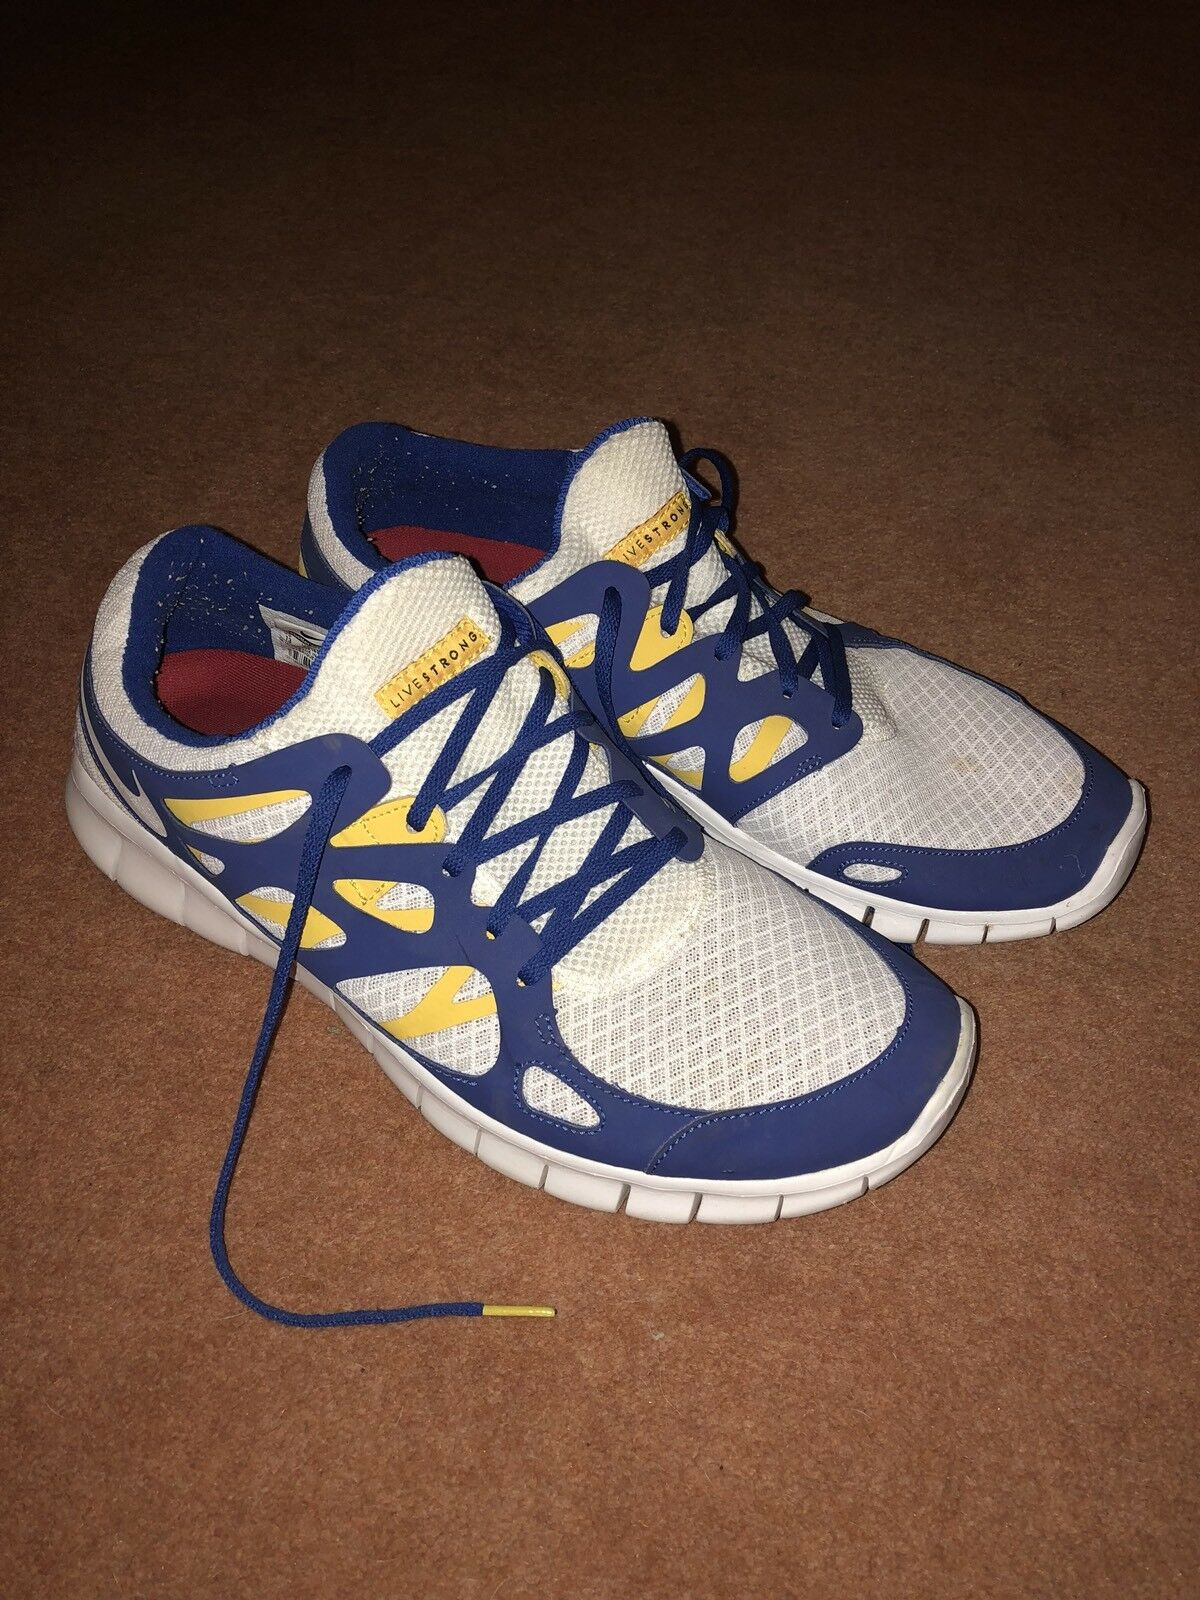 Nike Free Run - Livestrong Limited Edition best-selling model of the brand